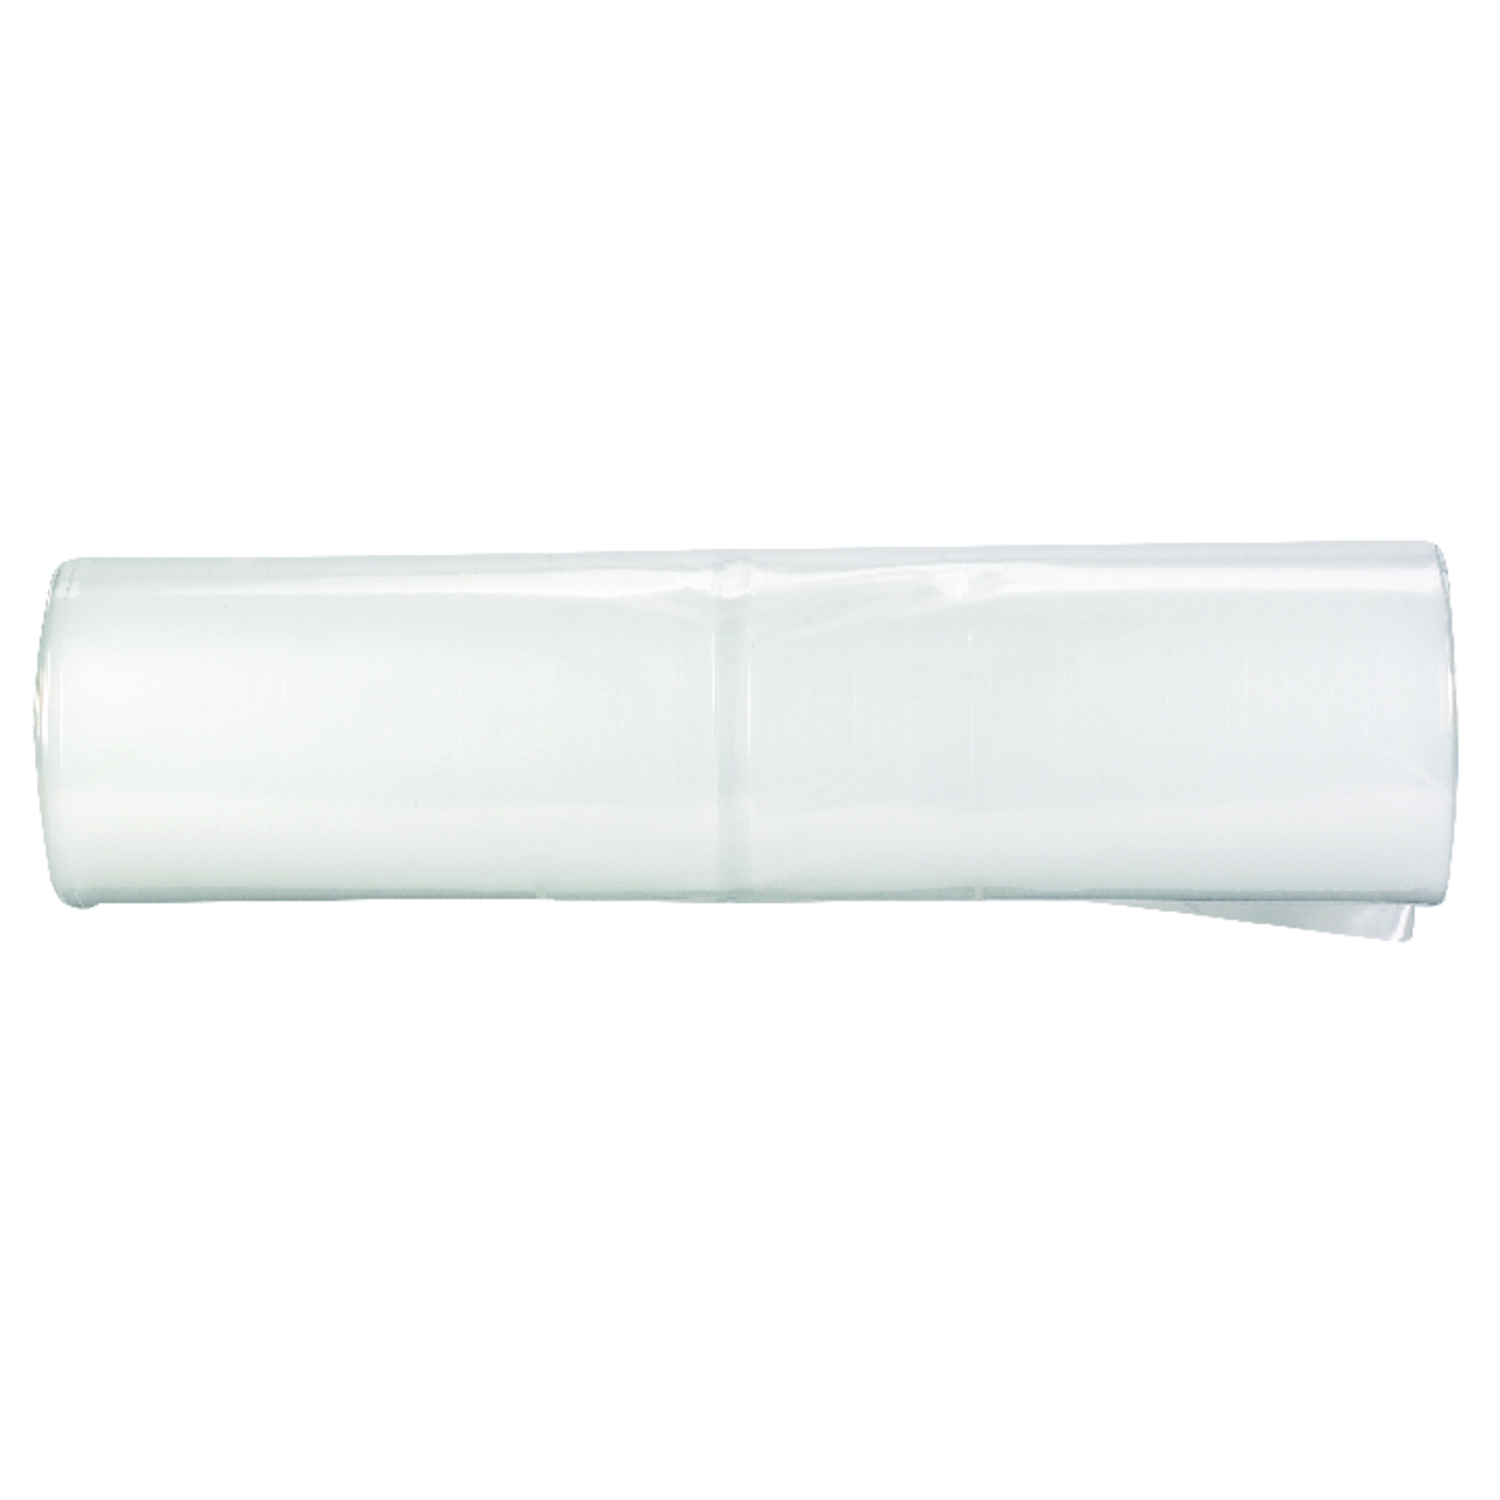 Berry Plastics  Film-Gard  Plastic Sheeting  6 mil  x 8 ft. W x 100 ft. L Polyethylene  Clear